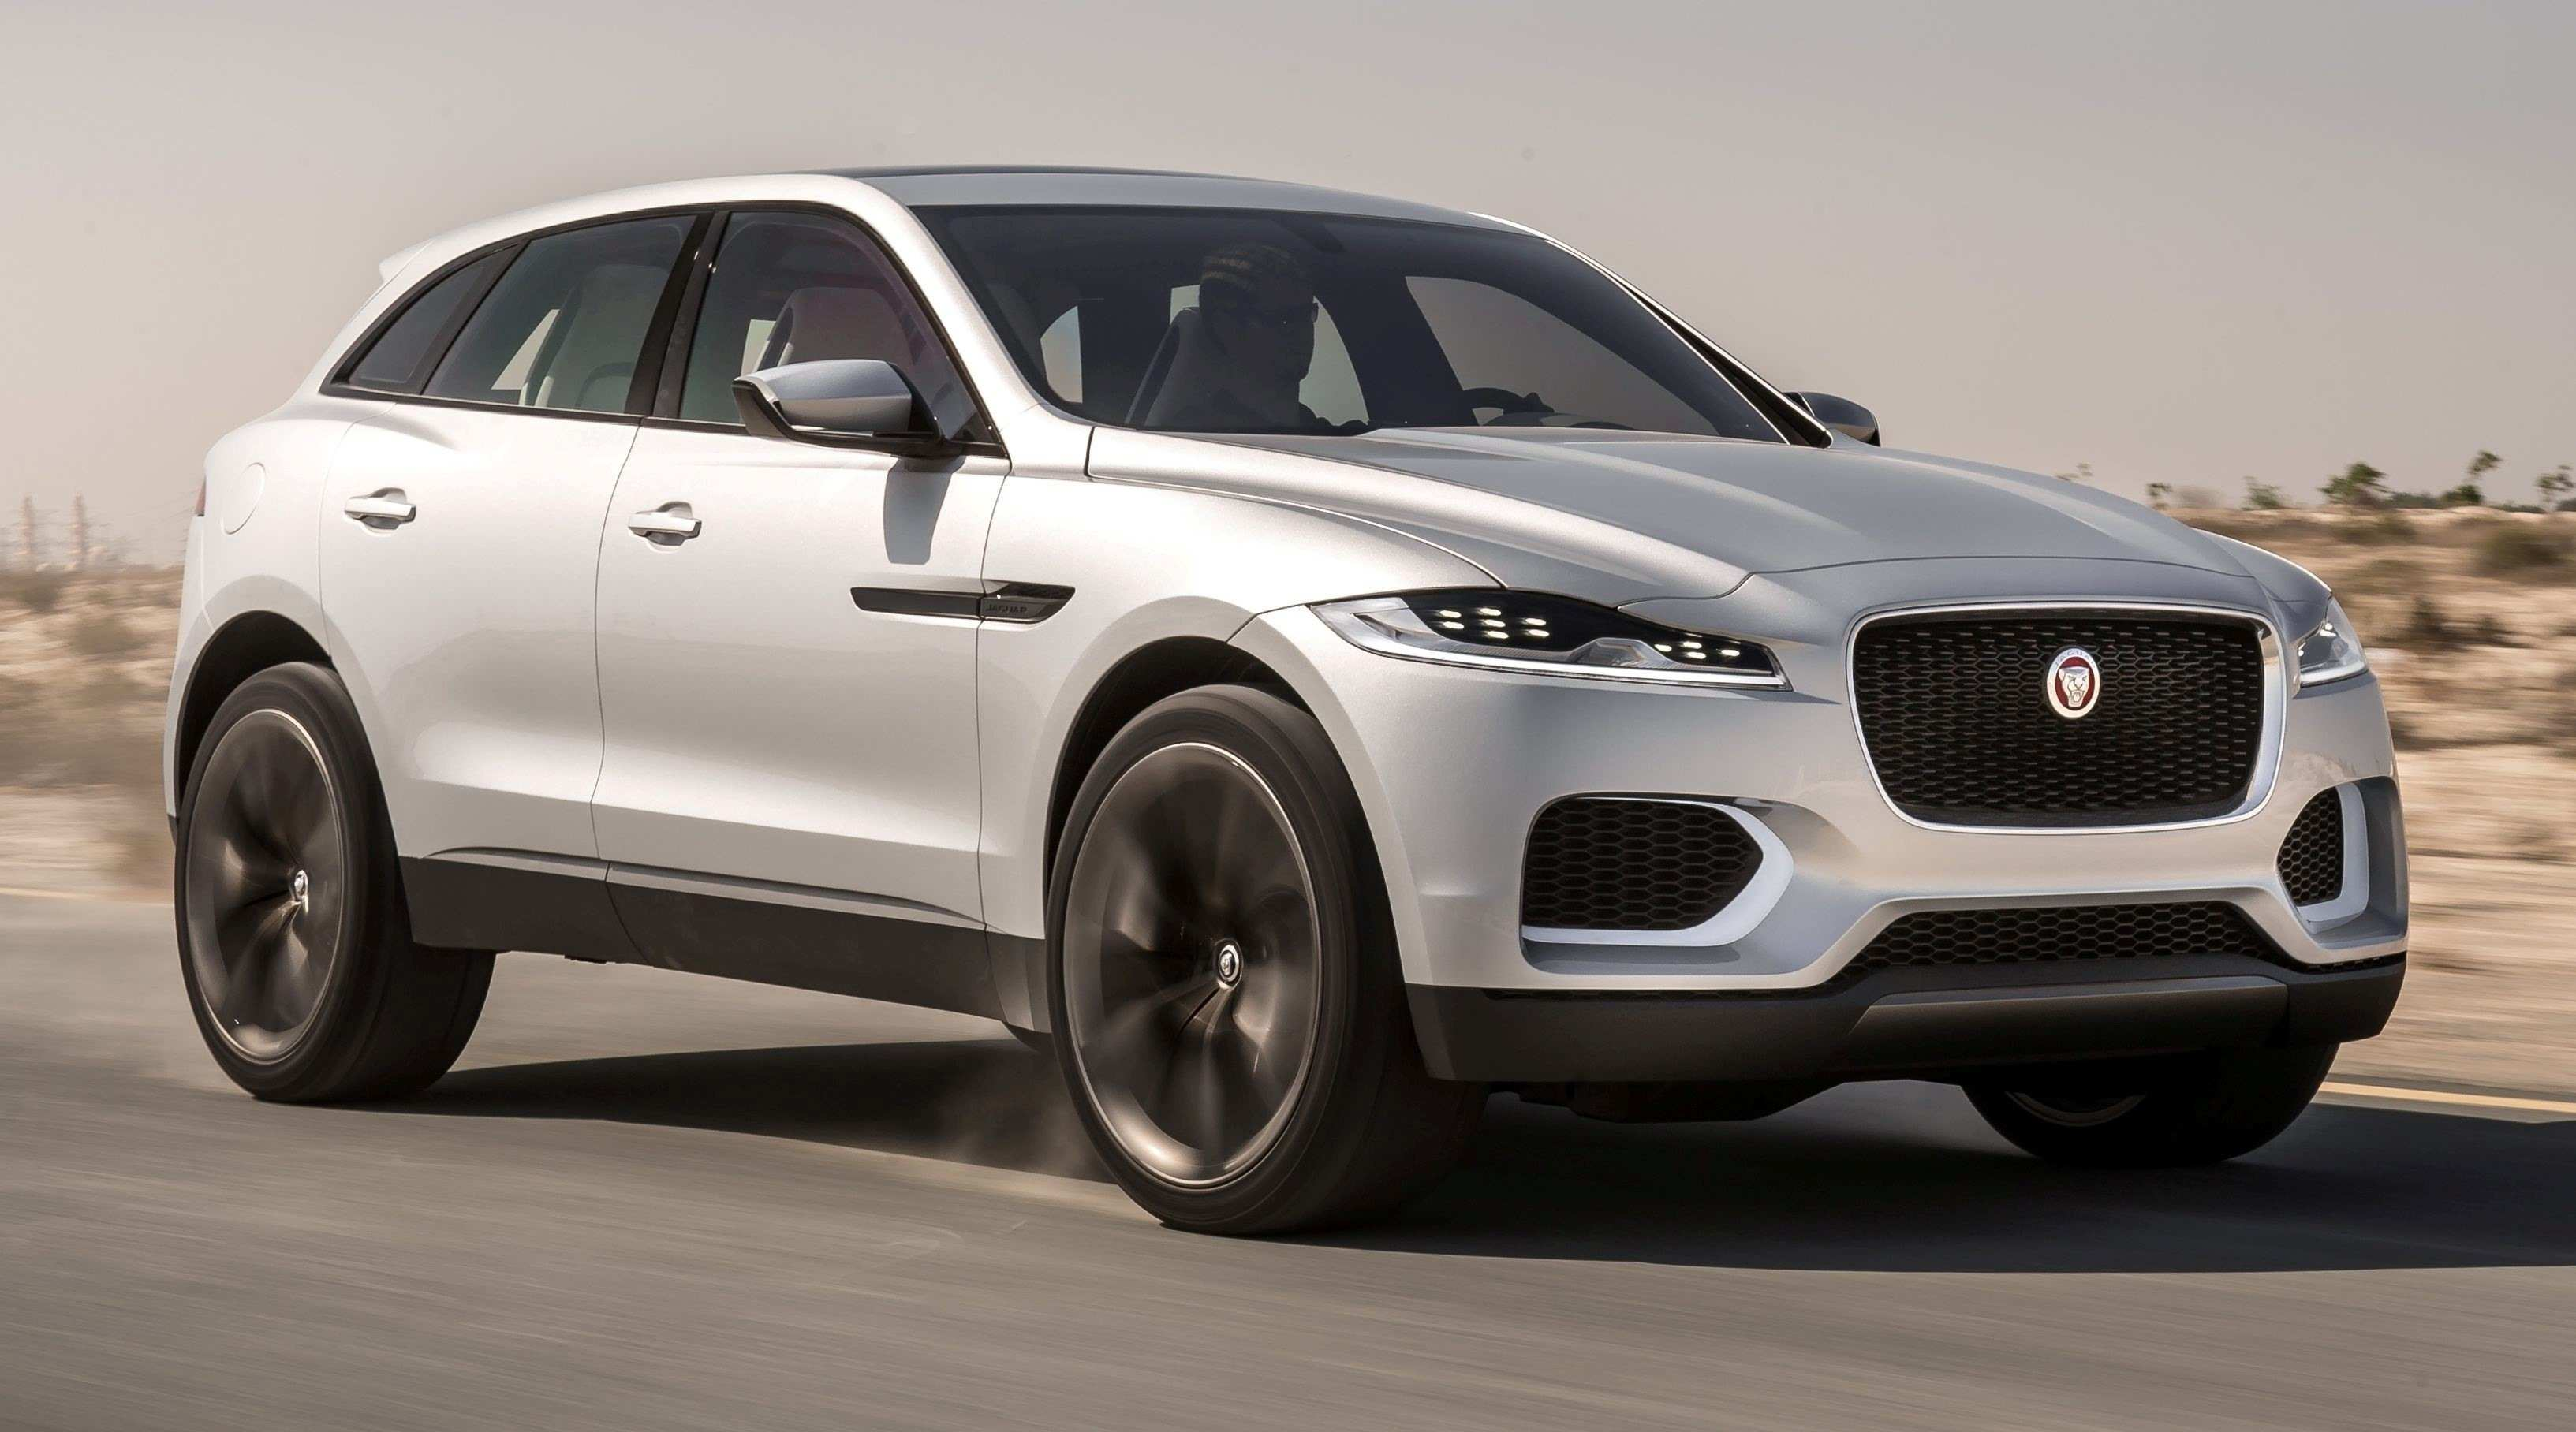 53 All New 2019 Jaguar Xq Crossover Speed Test with 2019 Jaguar Xq Crossover